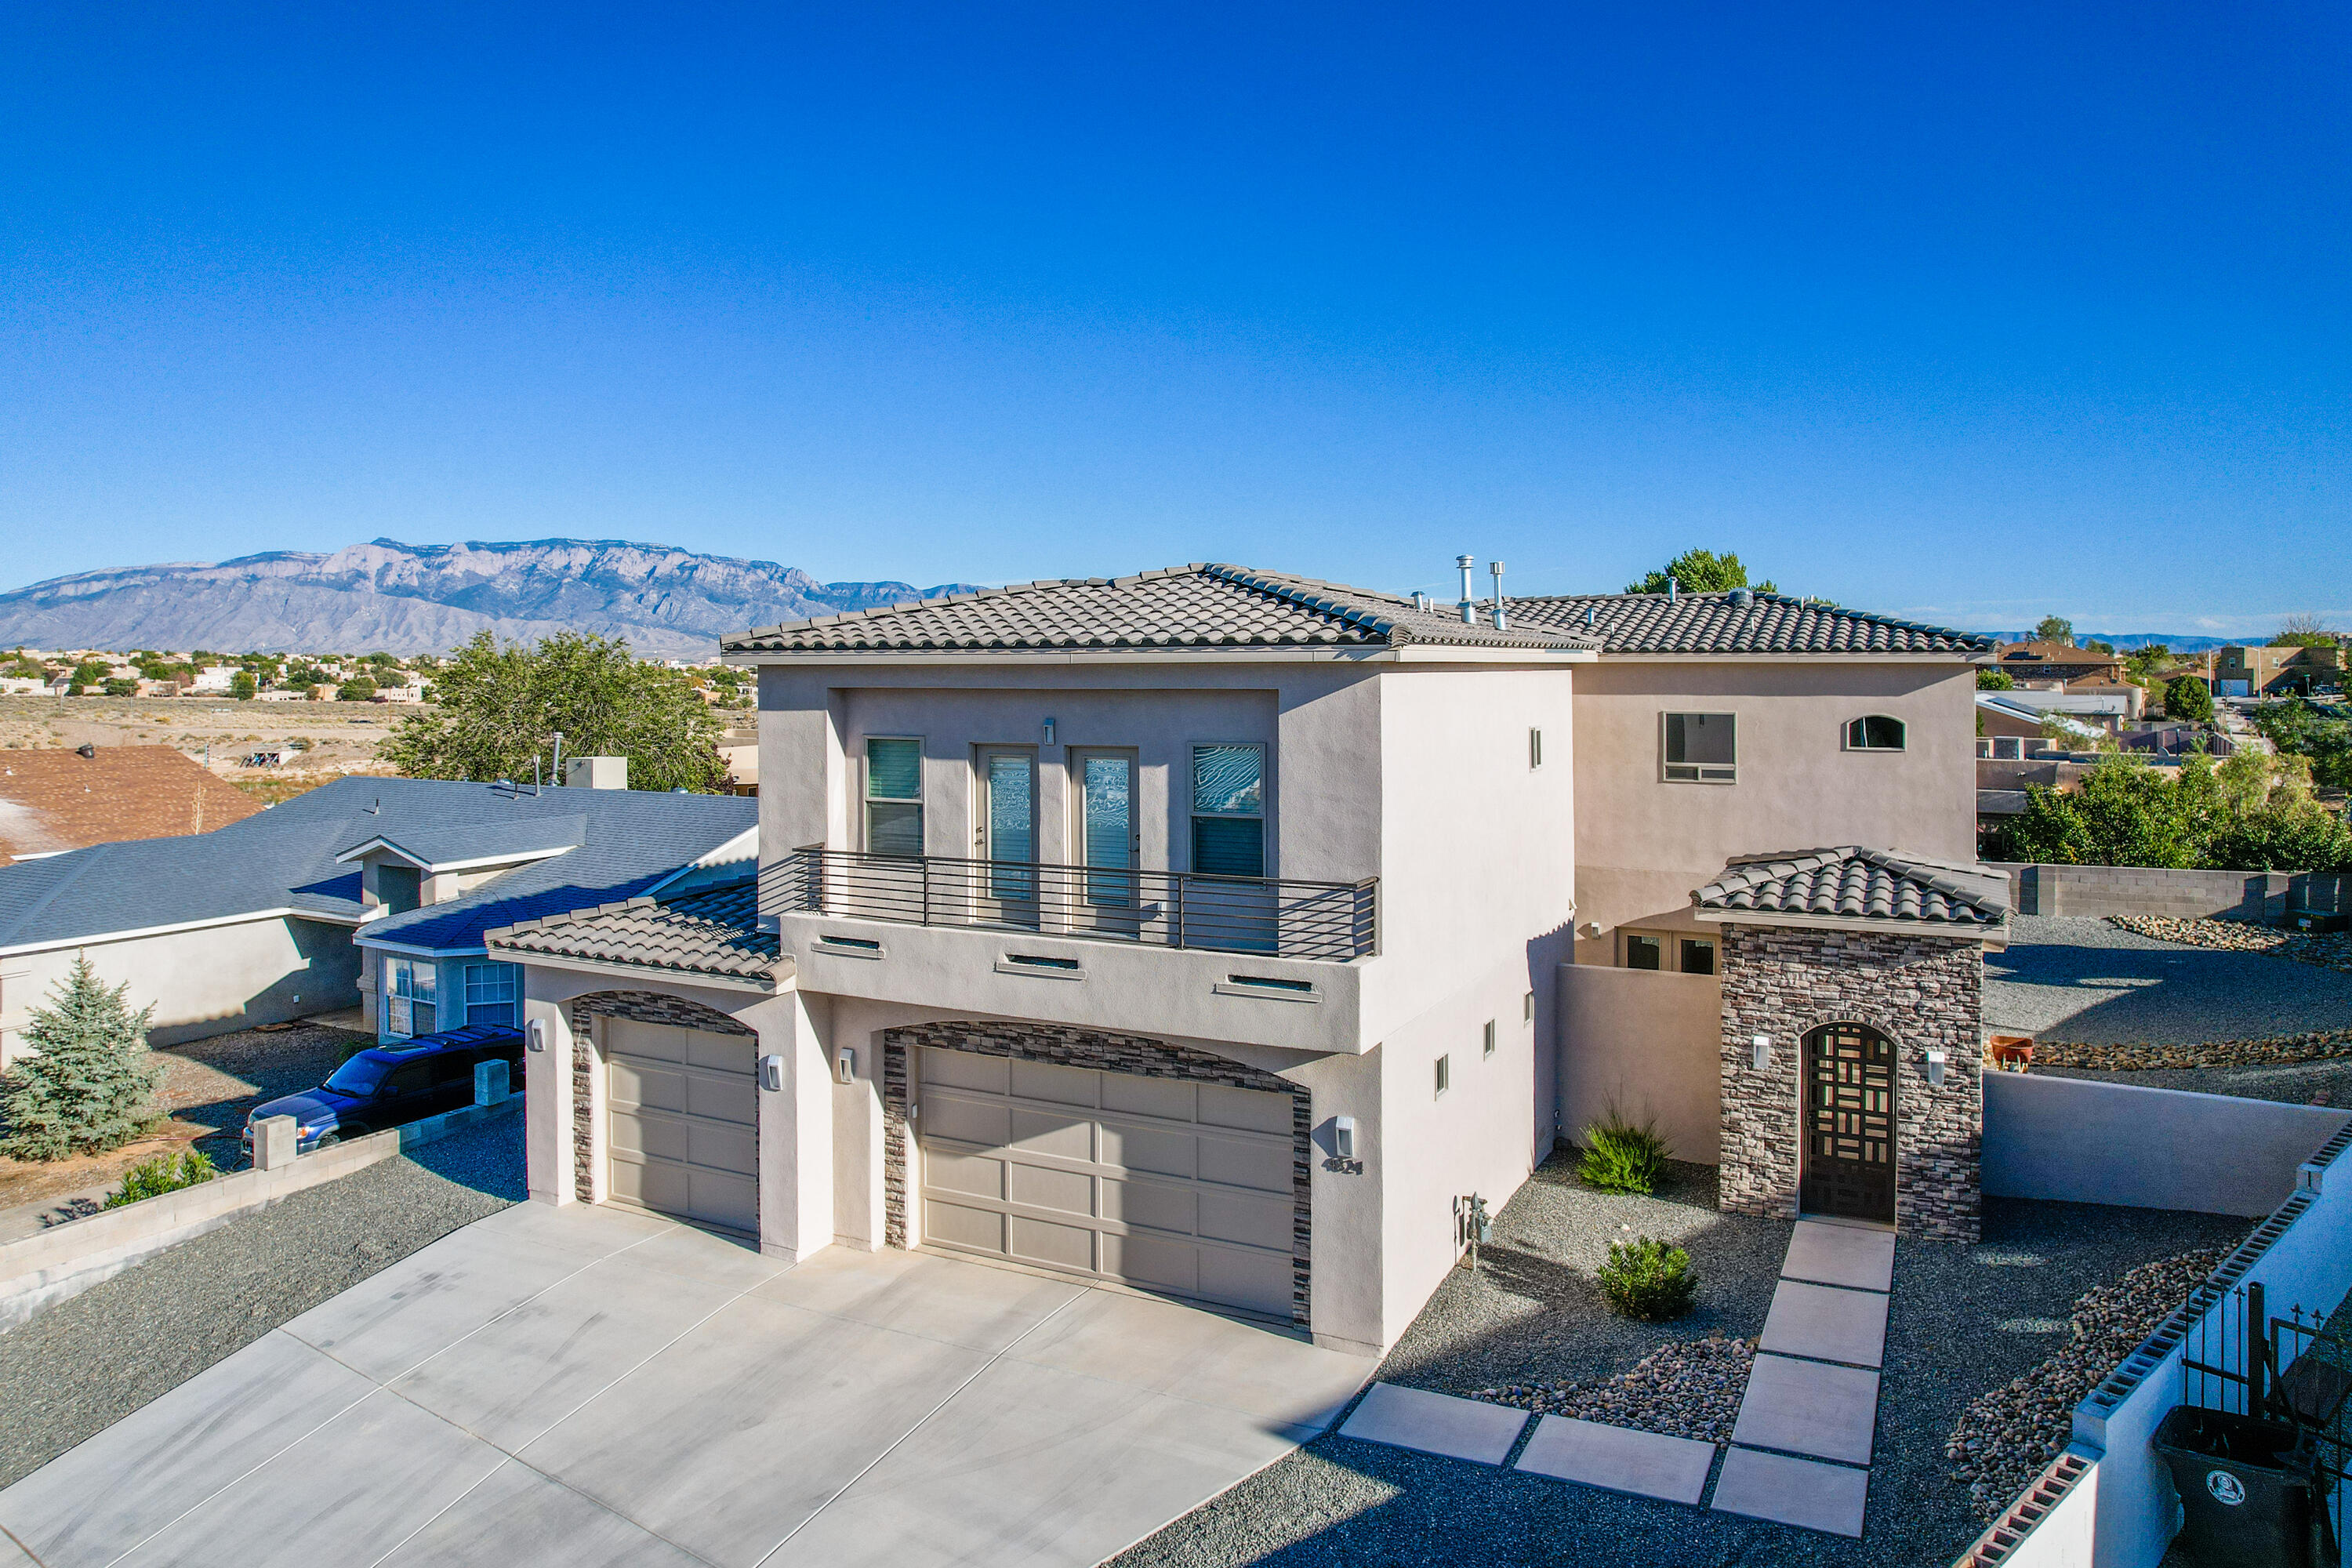 What a gem! This modern custom home built in 2017 is move in ready with upgrades throughout. Located on quiet cul-de-sac. Open concept living downstairs with gorgeous kitchen open to family room and dining room. Downstairs 3/4 bath is convenient and perfect for entertaining. Enjoy your front courtyard with multiple walk outs and gate house for privacy and security. Back porch faces southeast so grill dinner in the shade and enjoy your mountain views.Travel upstairs to find 4 oversized bedrooms. The owners suite has southeast facing balcony to savor city and mountain views. Huge walk in closet with upgraded cabinetry. Two of the secondary bedrooms share northwest facing balcony, each with private access.3 car garage for parking and storage. Schedule a showing today.